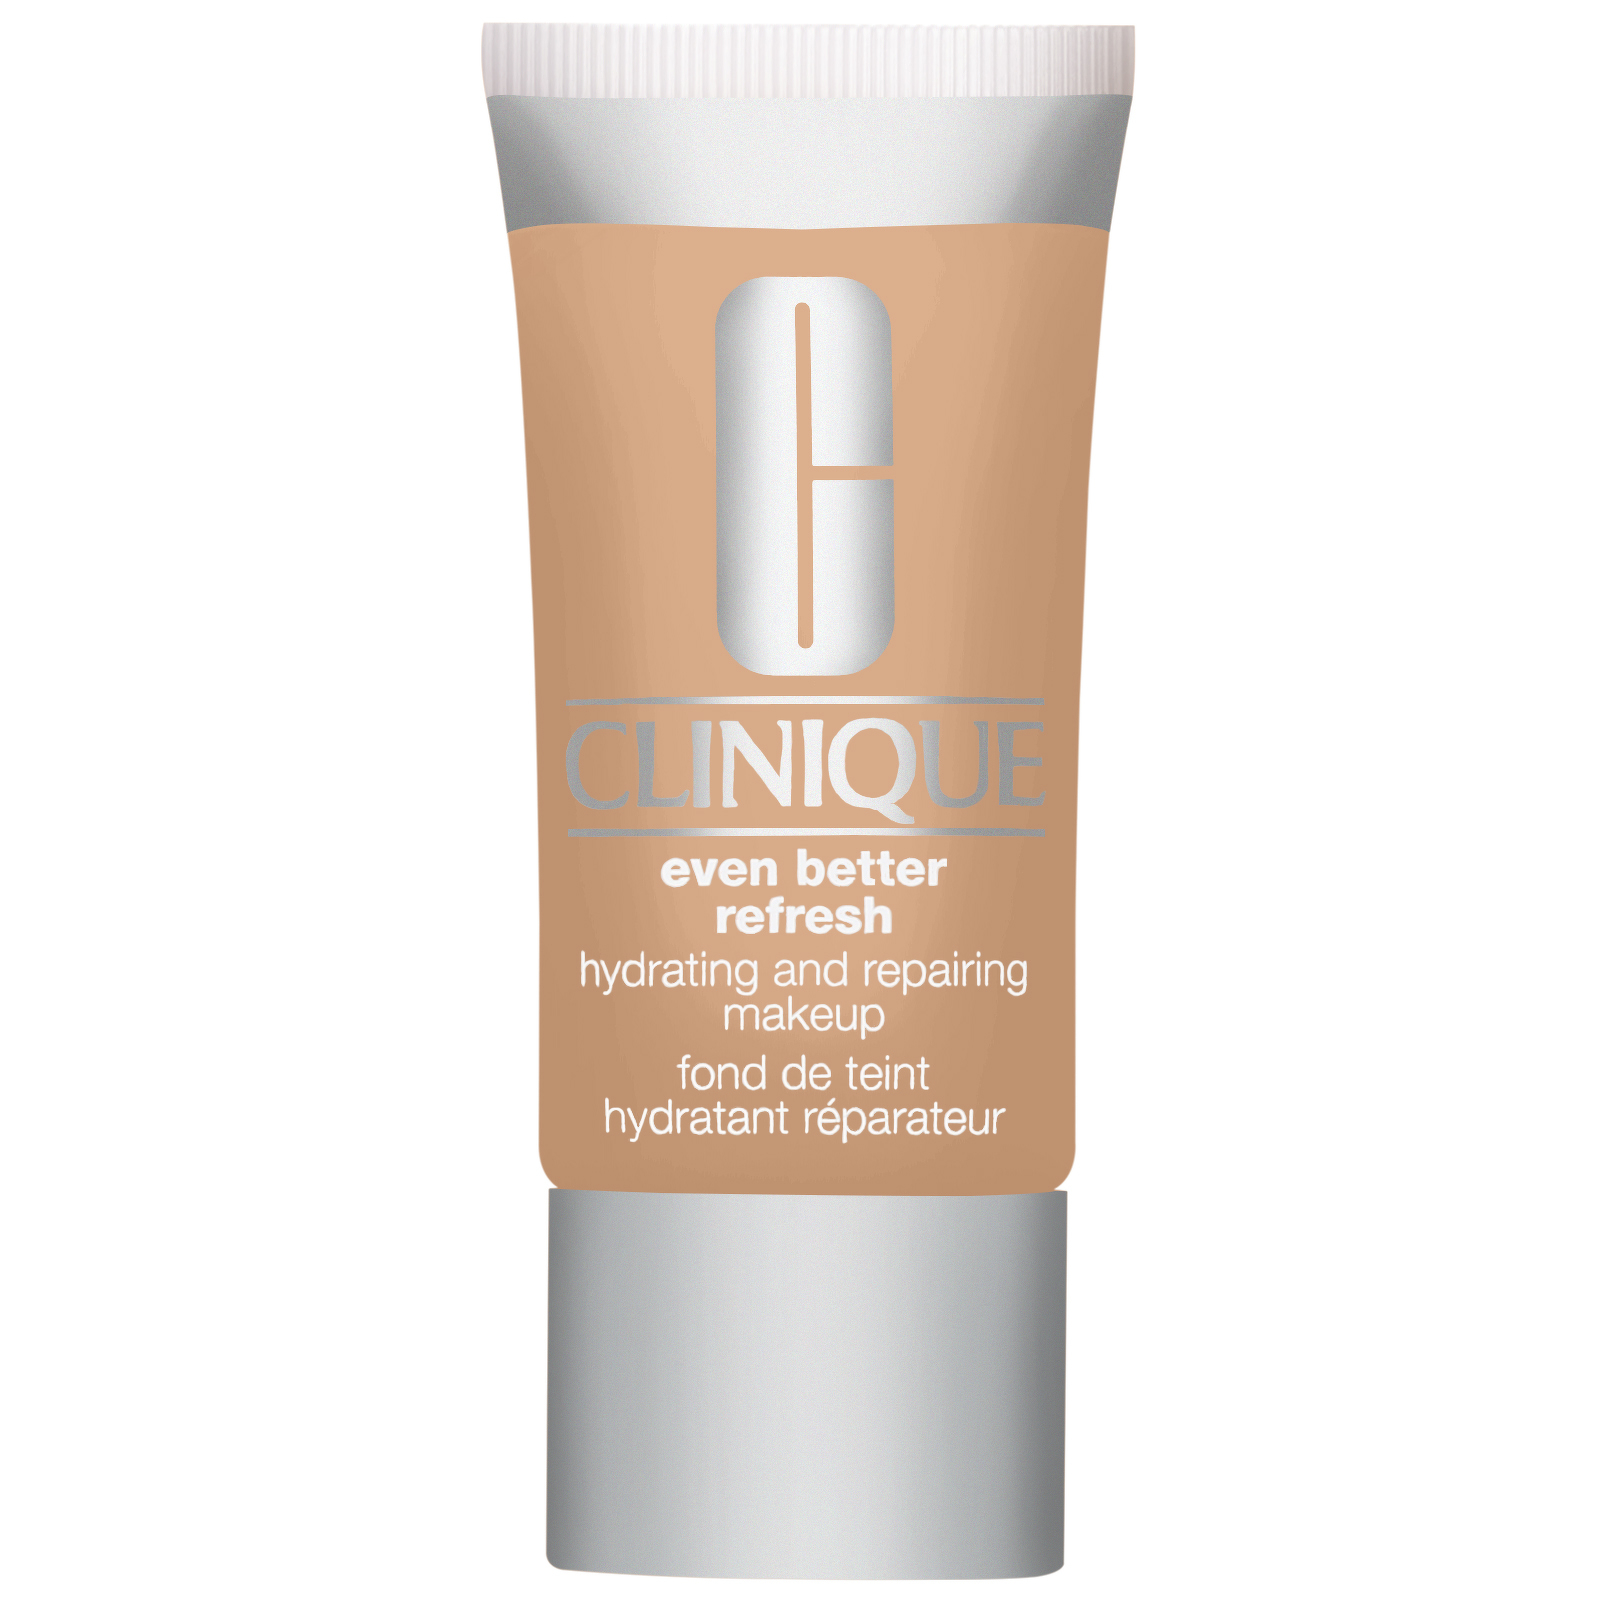 Clinique Even Better Refresh Hydrating & Repair Foundation CN 74 Beige 30ml